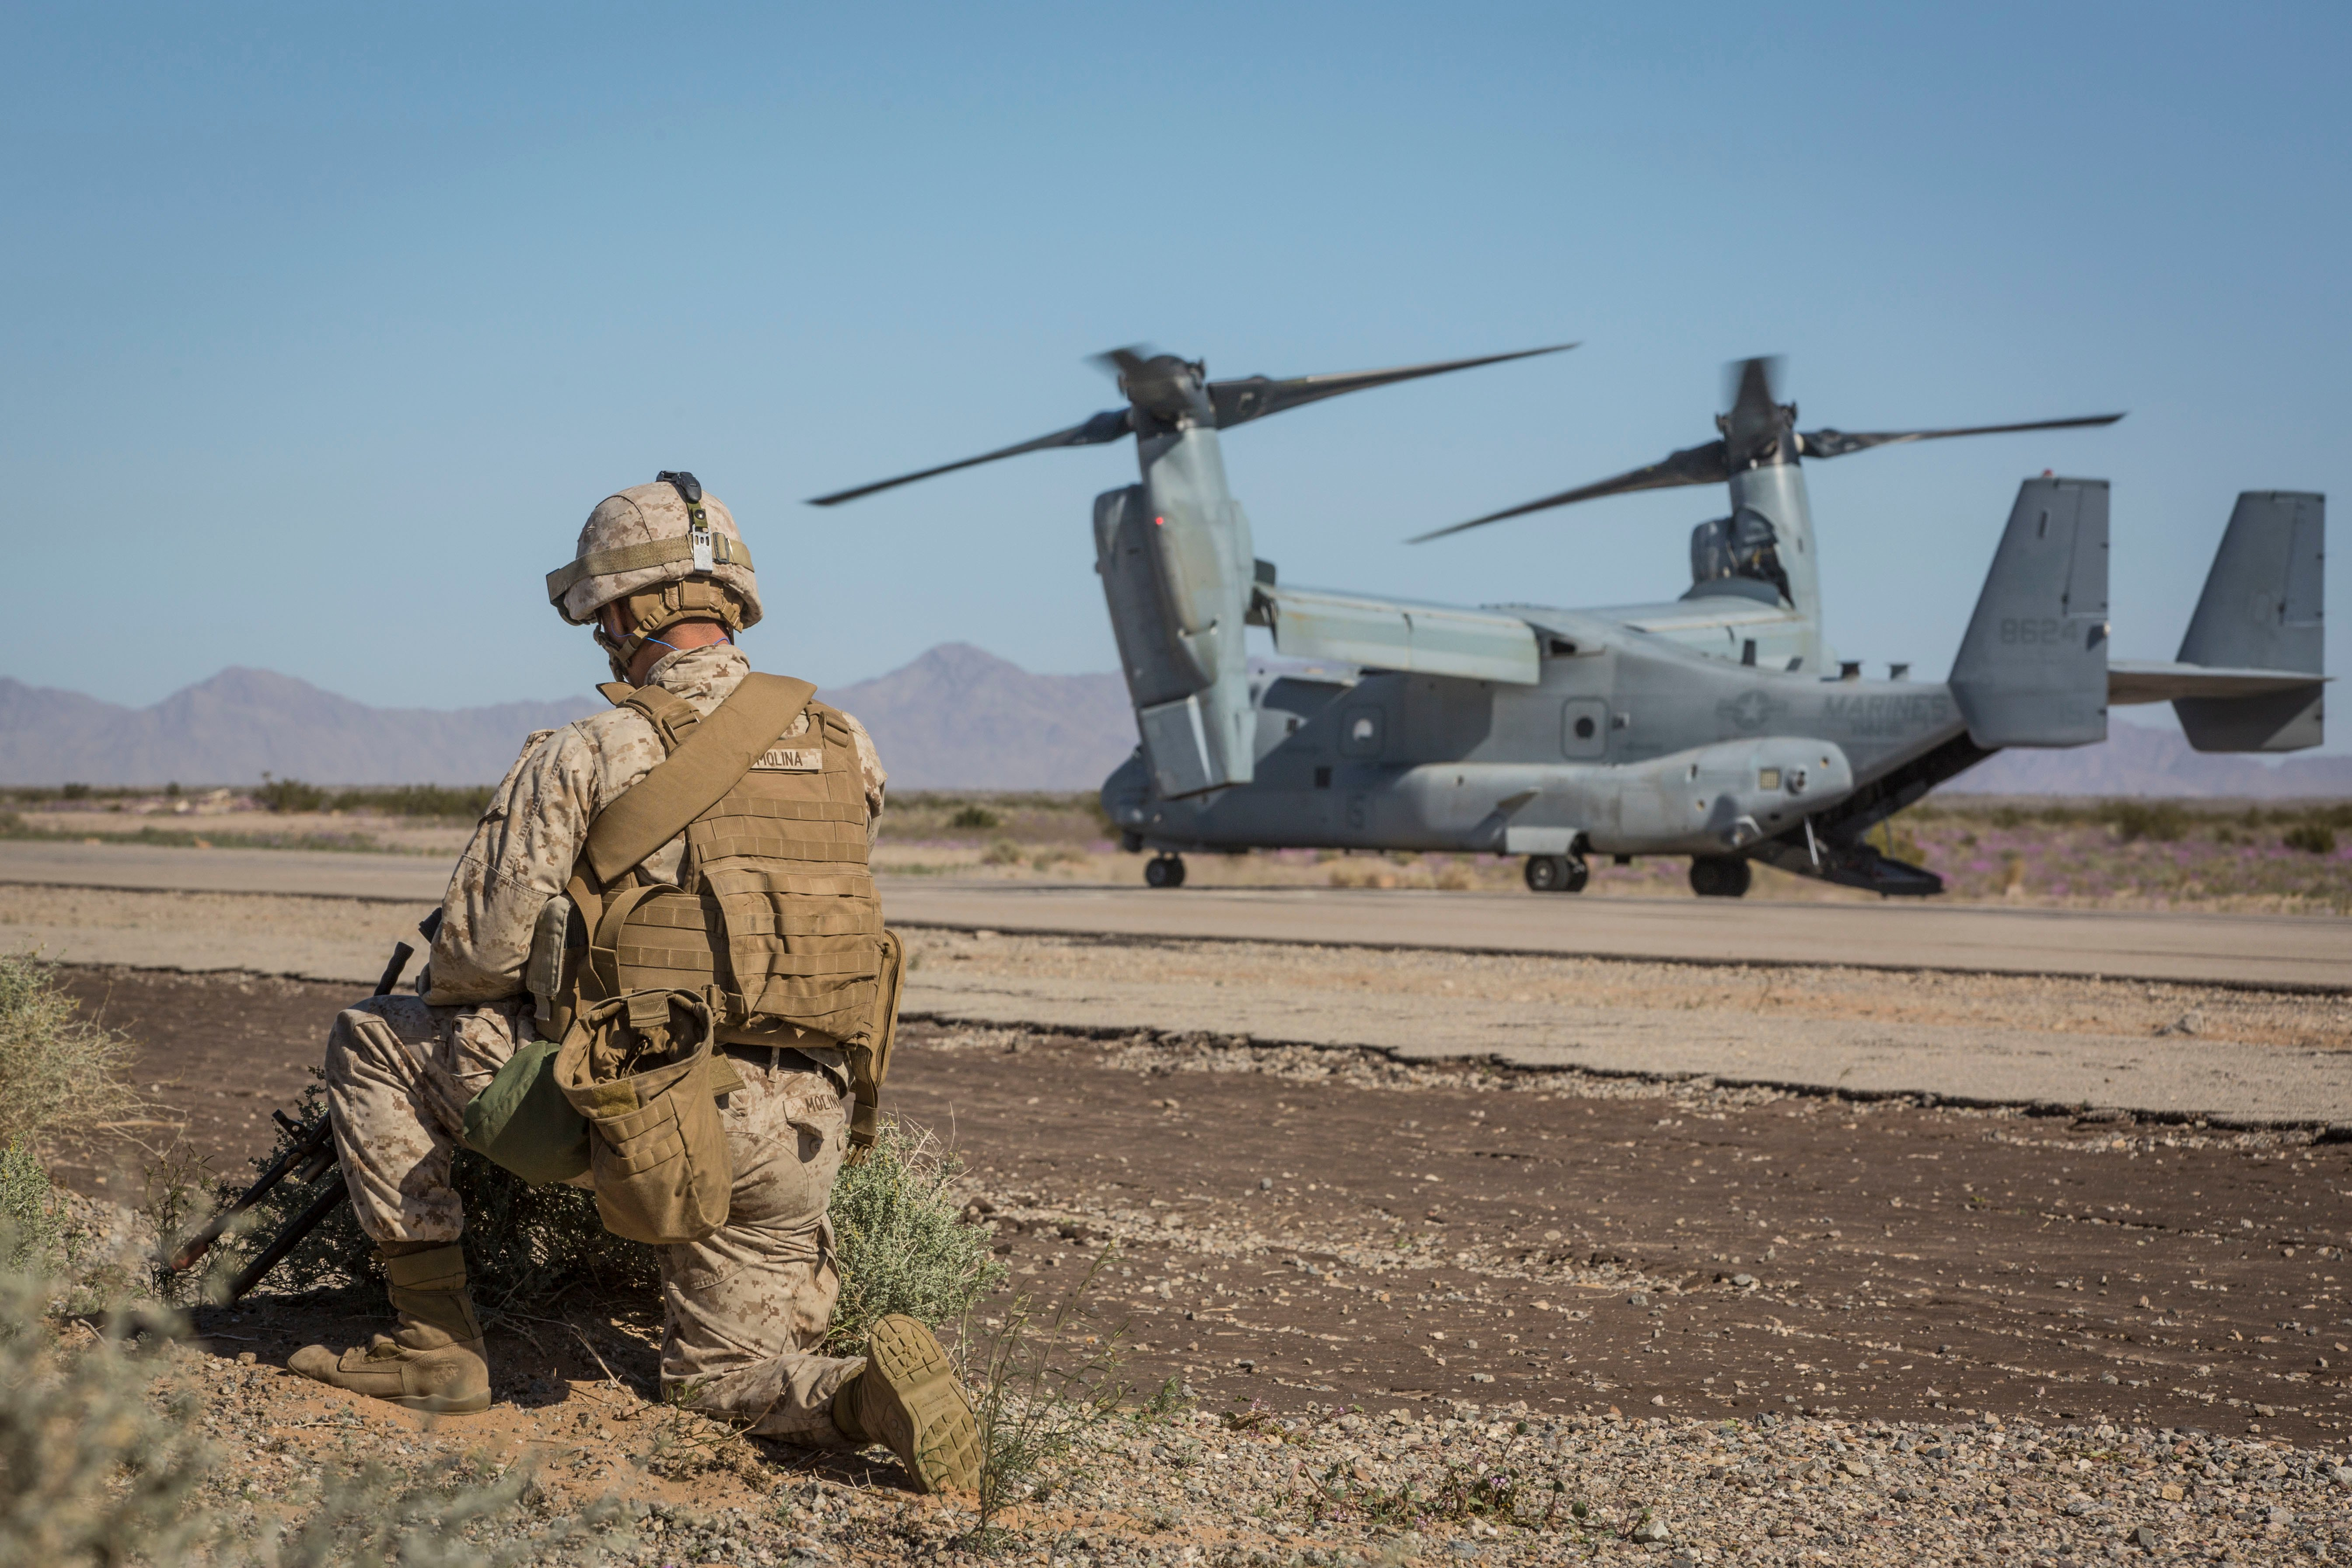 With Tweaks and Upgrades, MV-22B Osprey Poised to Add More Might to